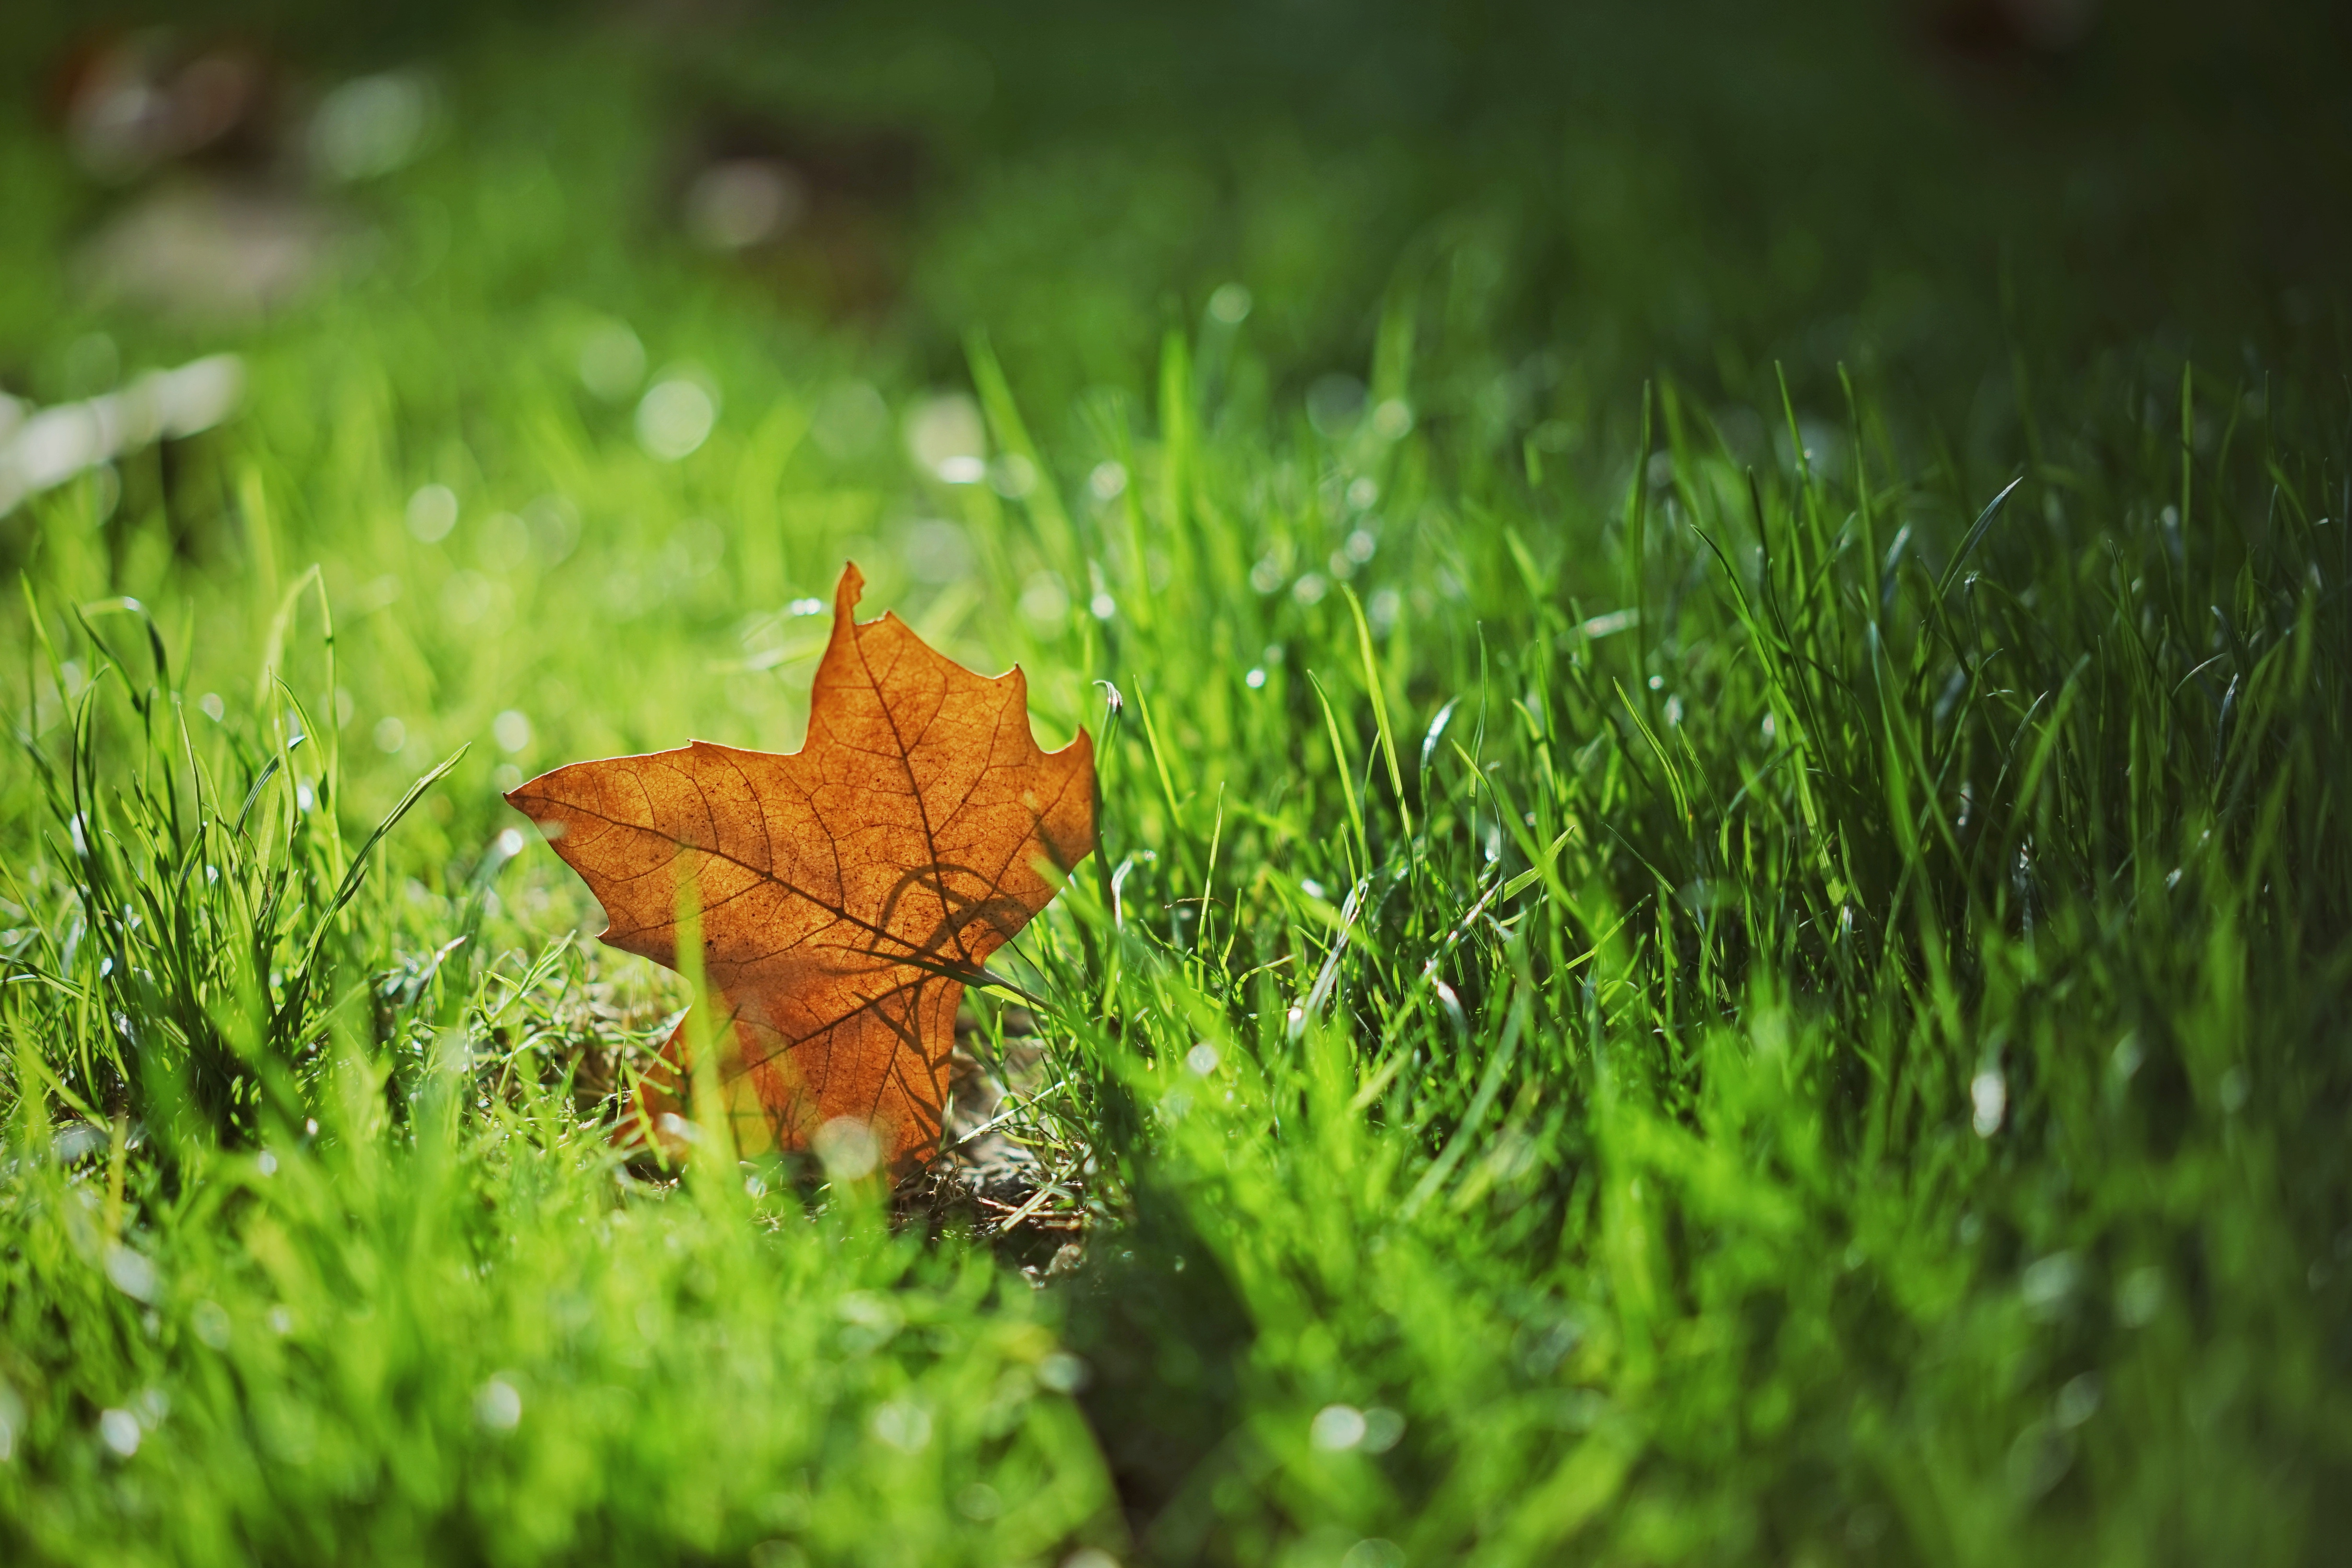 57919 download wallpaper Nature, Sheet, Leaf, Autumn, Maple, Grass, Blur, Smooth screensavers and pictures for free